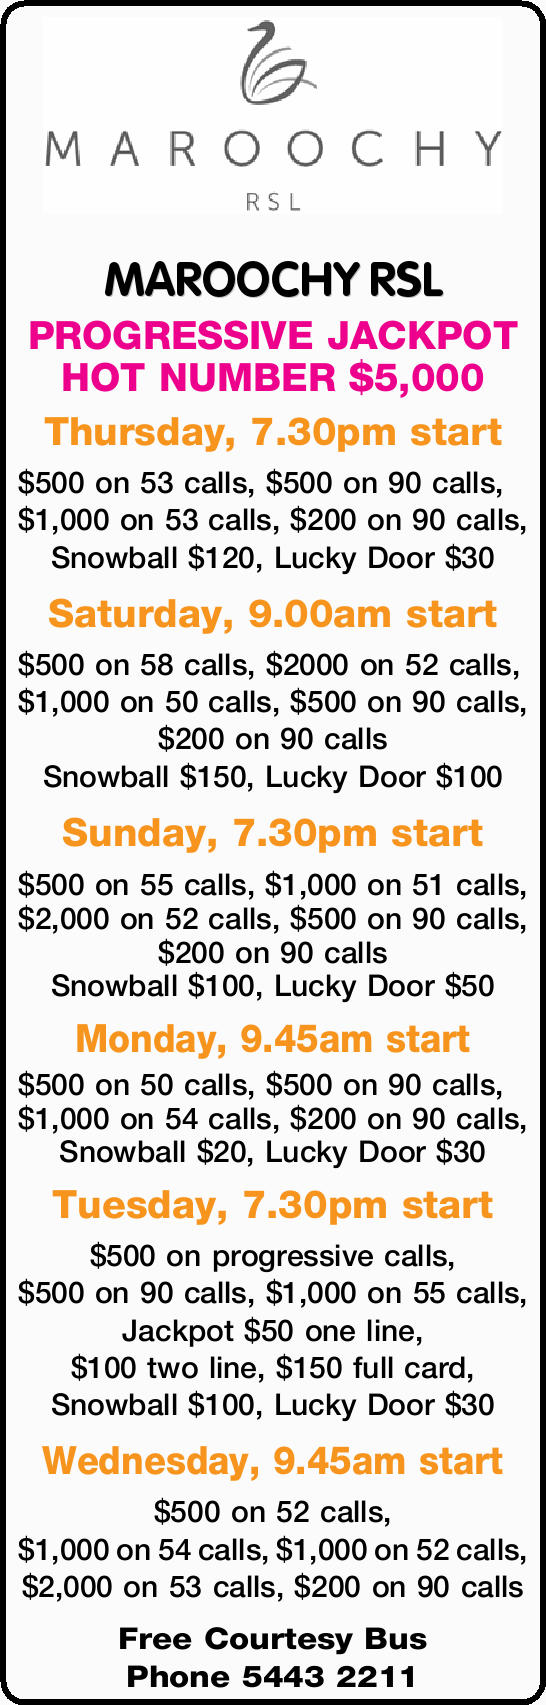 MAROOCHY RSL PROGRESSIVE JACKPOT HOT NUMBER $5,000 Thursday, 7.30pm start $500 on 53 calls, $500...